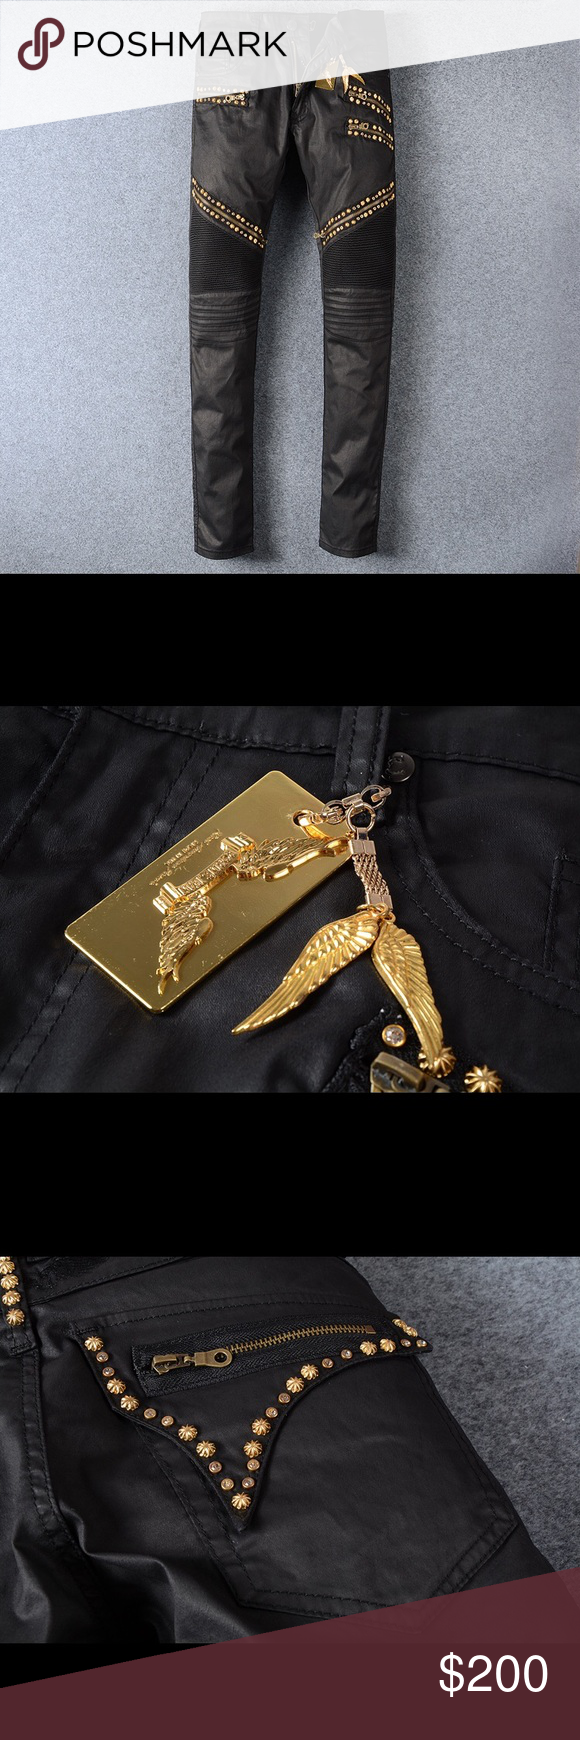 Robin jeans gold tag